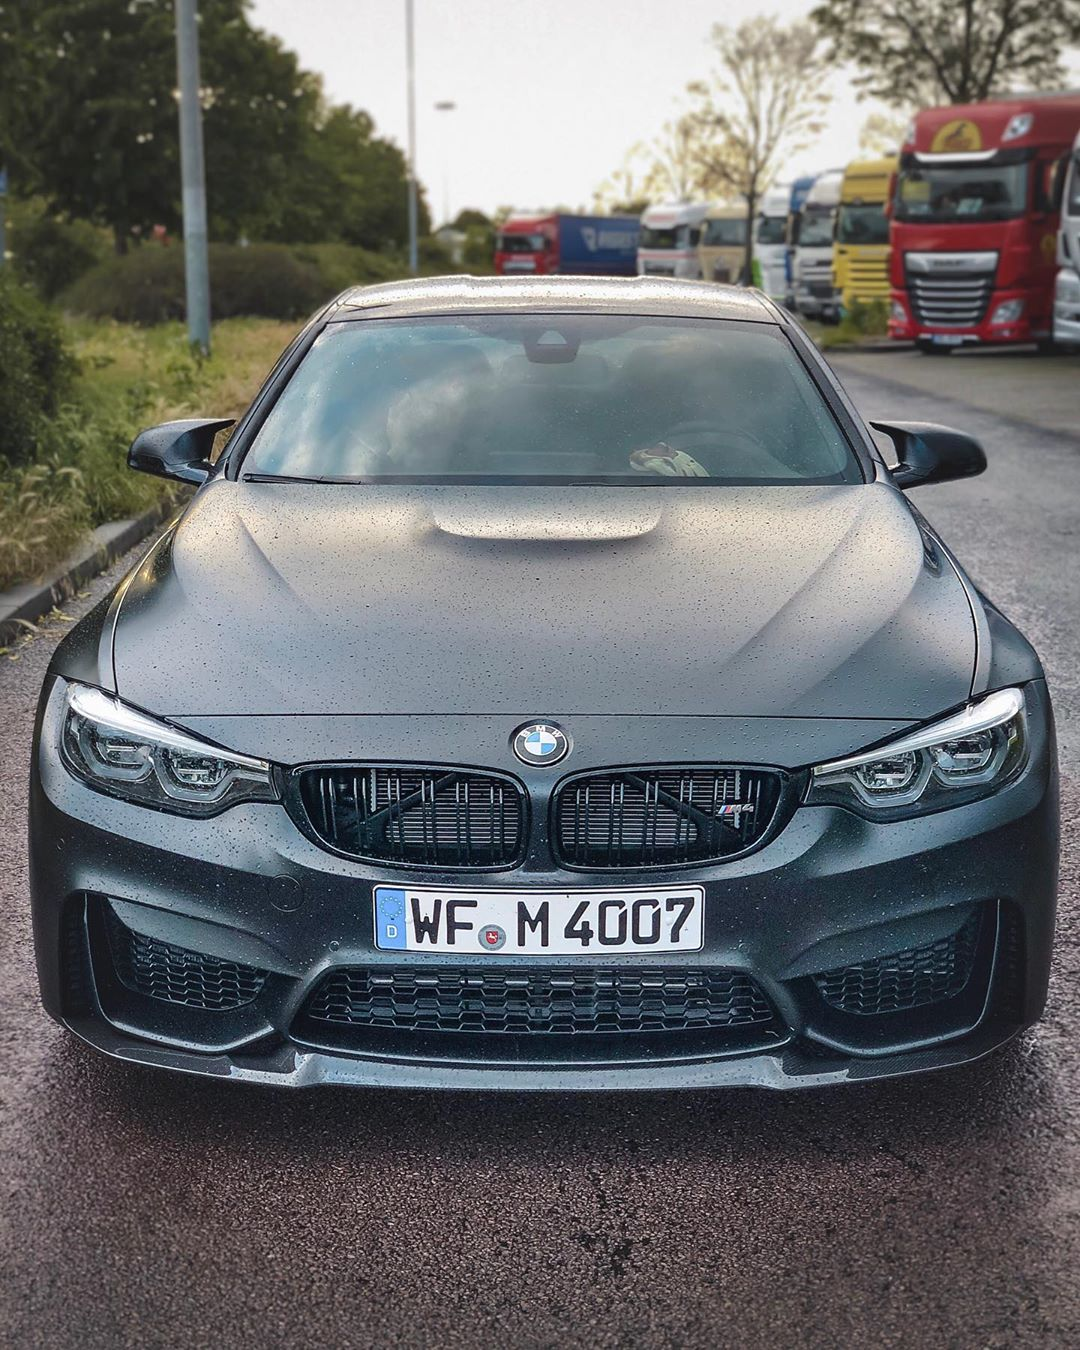 Ingolstadt collection day ahead …We are taking our M4 Competition for the Roadtrip to Bavaria  #bmwmrepost #mperformance #m4competition #m4competitionpack #m4cs #m4 #bmwm4 #bmwm4competitionpackage #frozenblack #frozenblackm4 #automanntv #automannsgarage #mtown